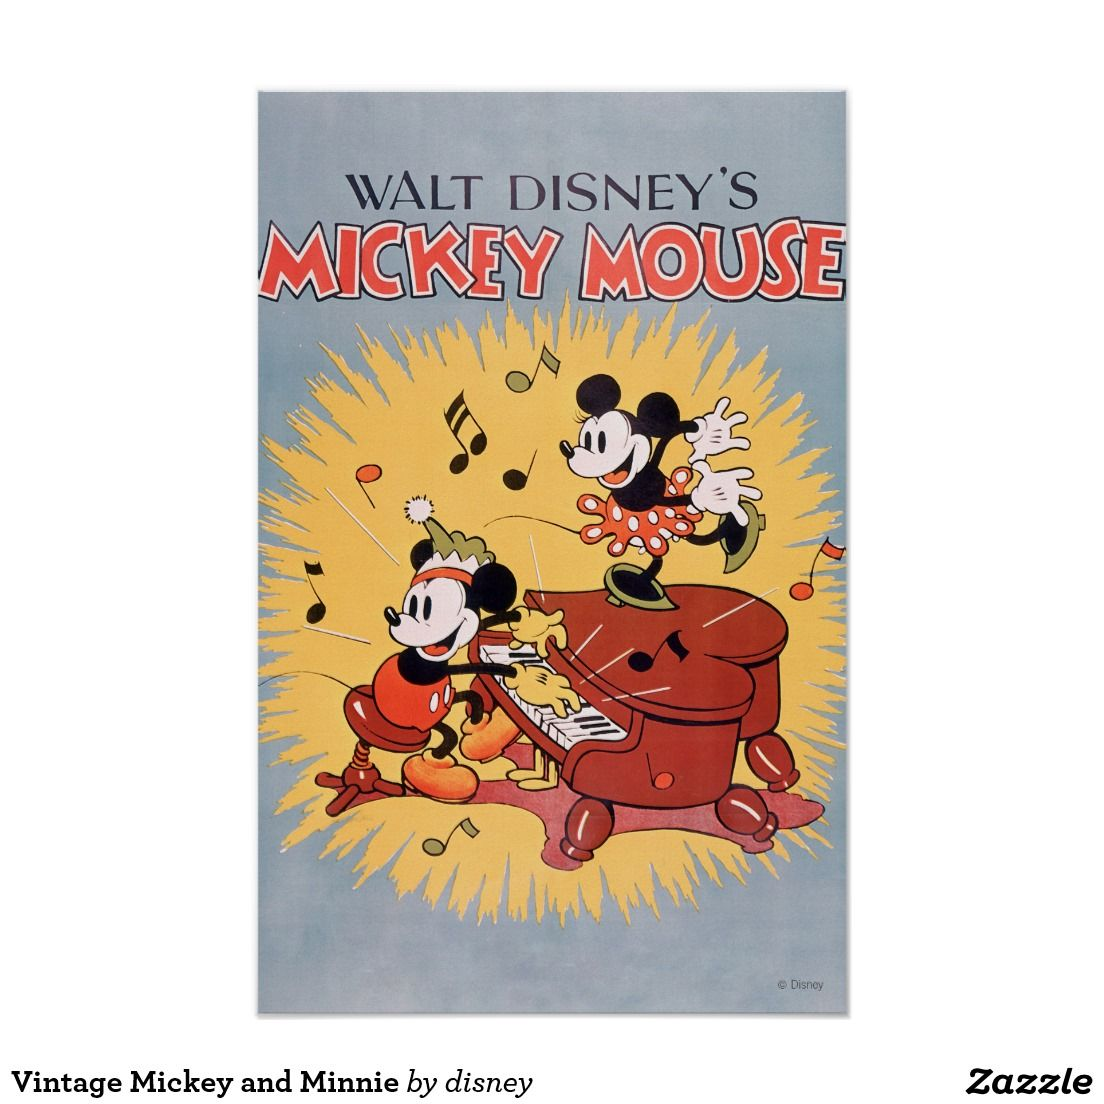 Vintage Mickey And Minnie Poster Zazzle Com Vintage Mickey Disney Posters Vintage Disney Posters